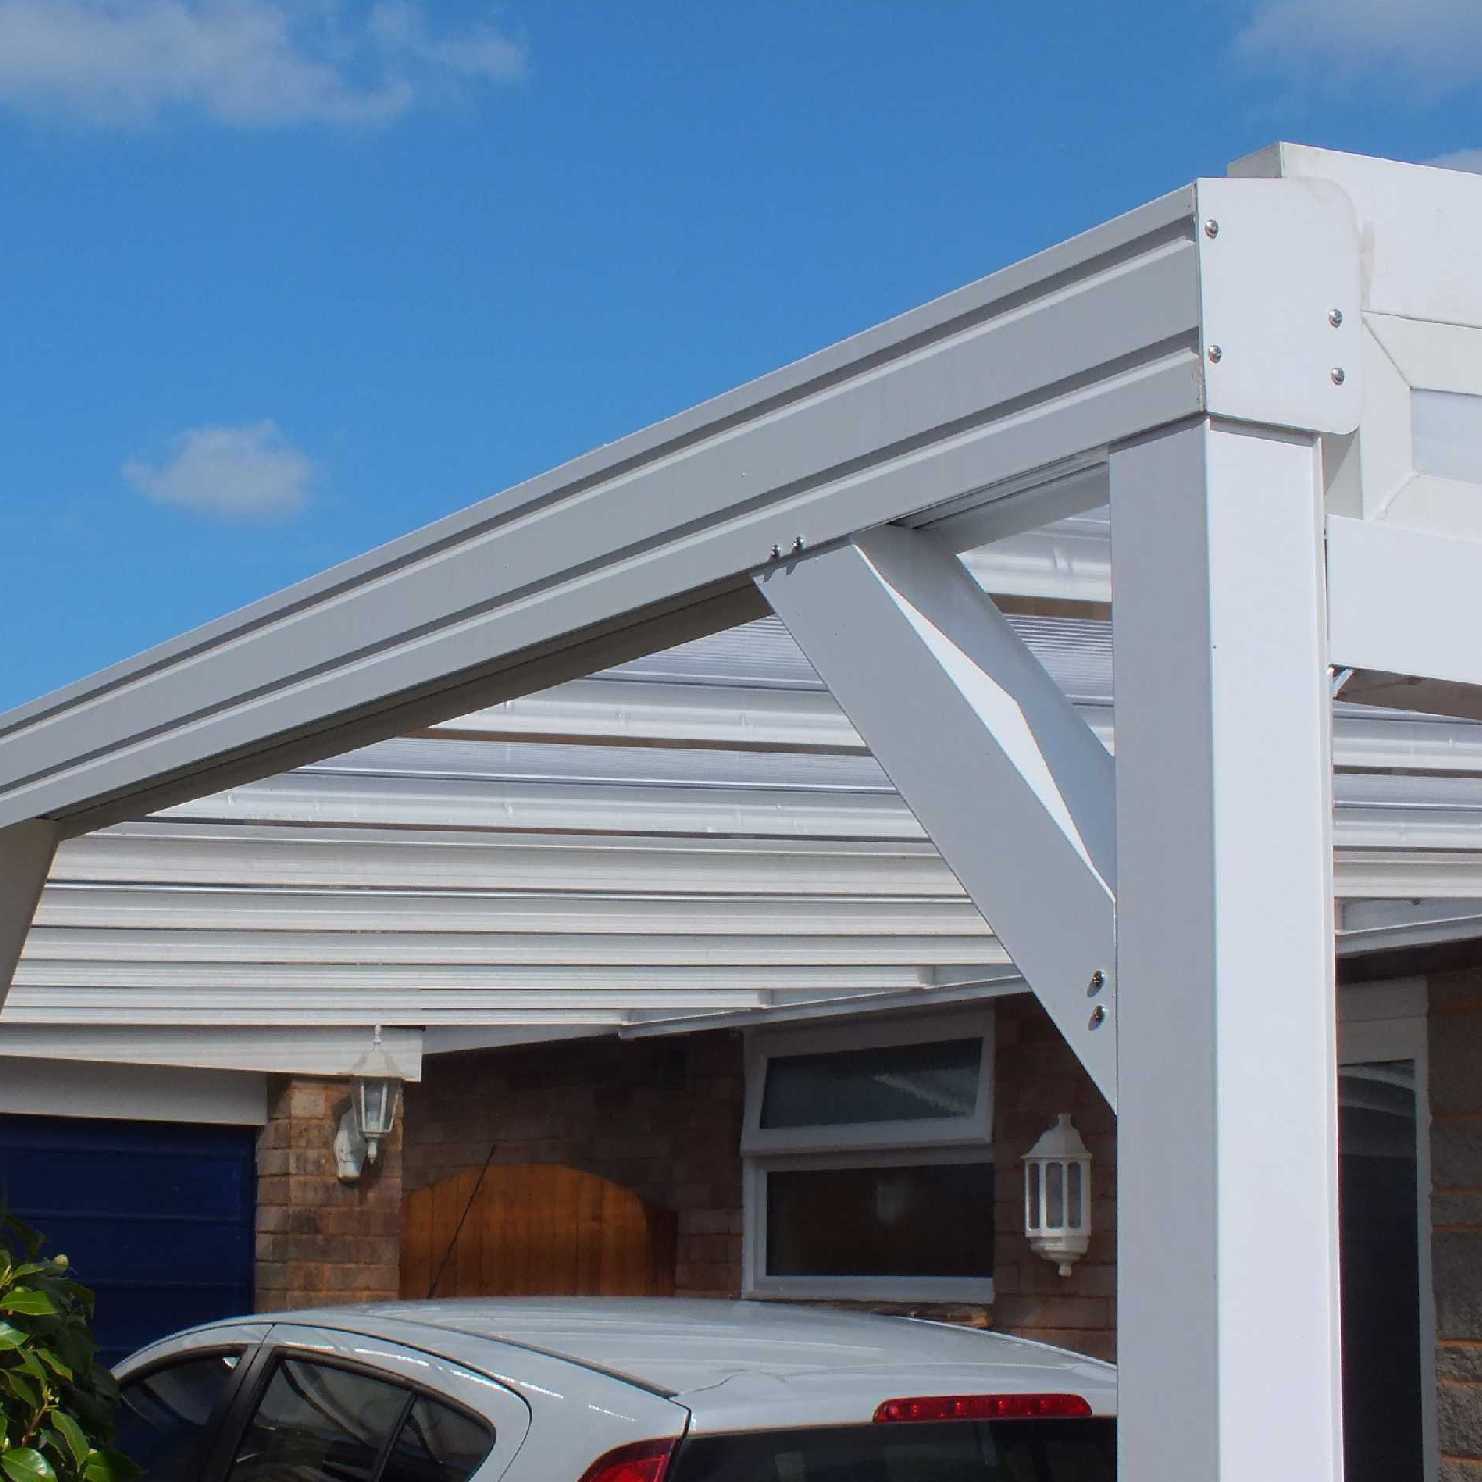 Great deals on Omega Smart White  Lean-To Canopy with 16mm Polycarbonate Glazing - 3.1m (W) x 1.5m (P), (2) Supporting Posts